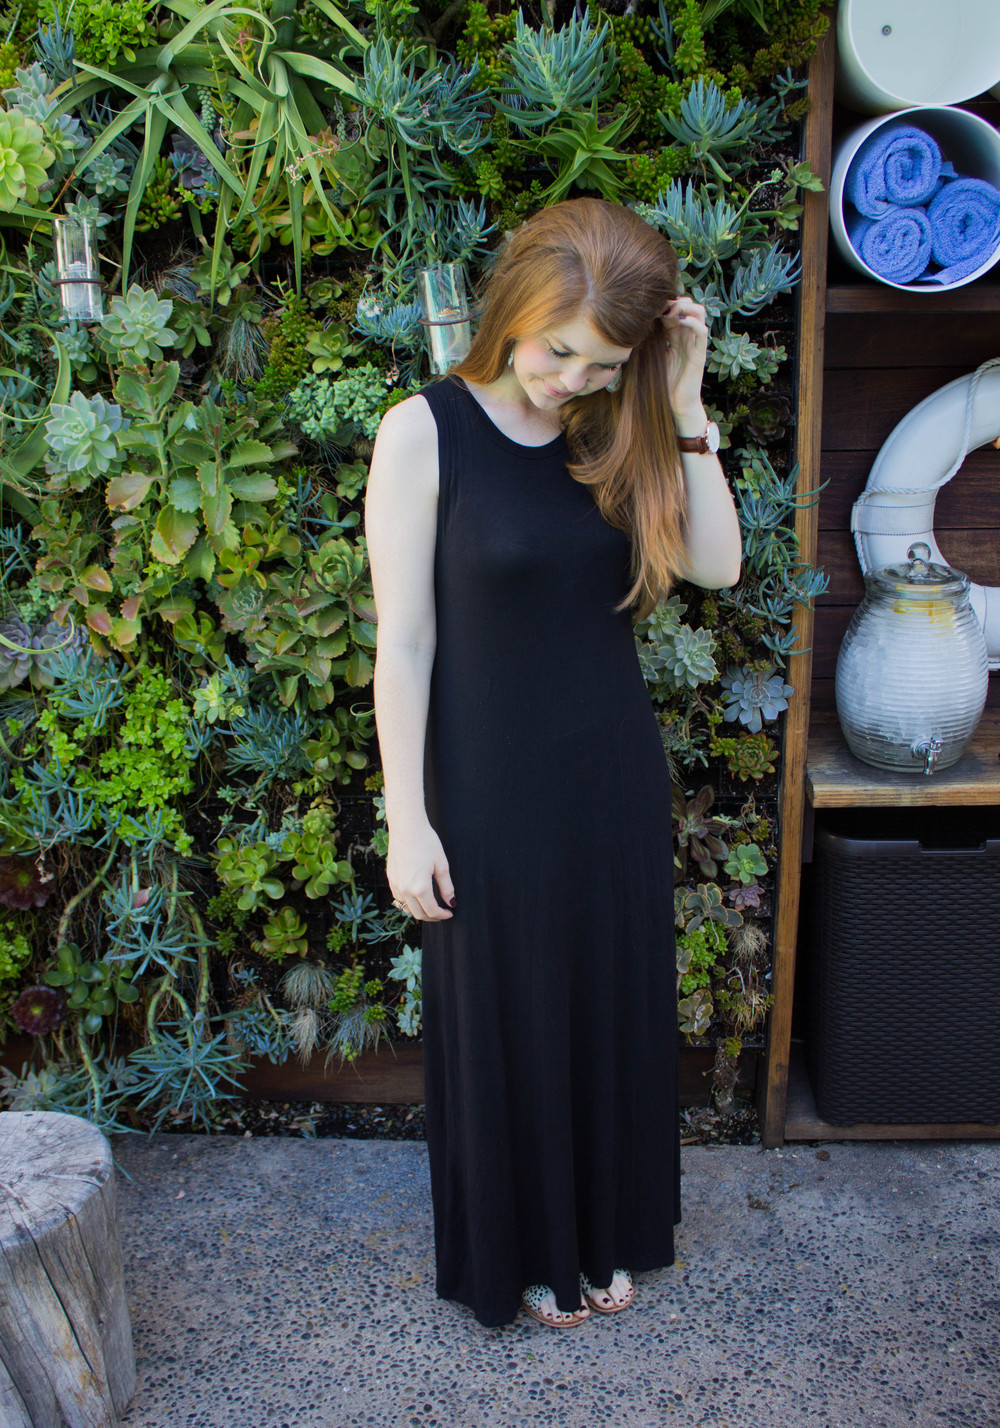 black maxi dress, bc cheetah sandals, Daniel Wellington watch, The Pearl Hotel, San Diego